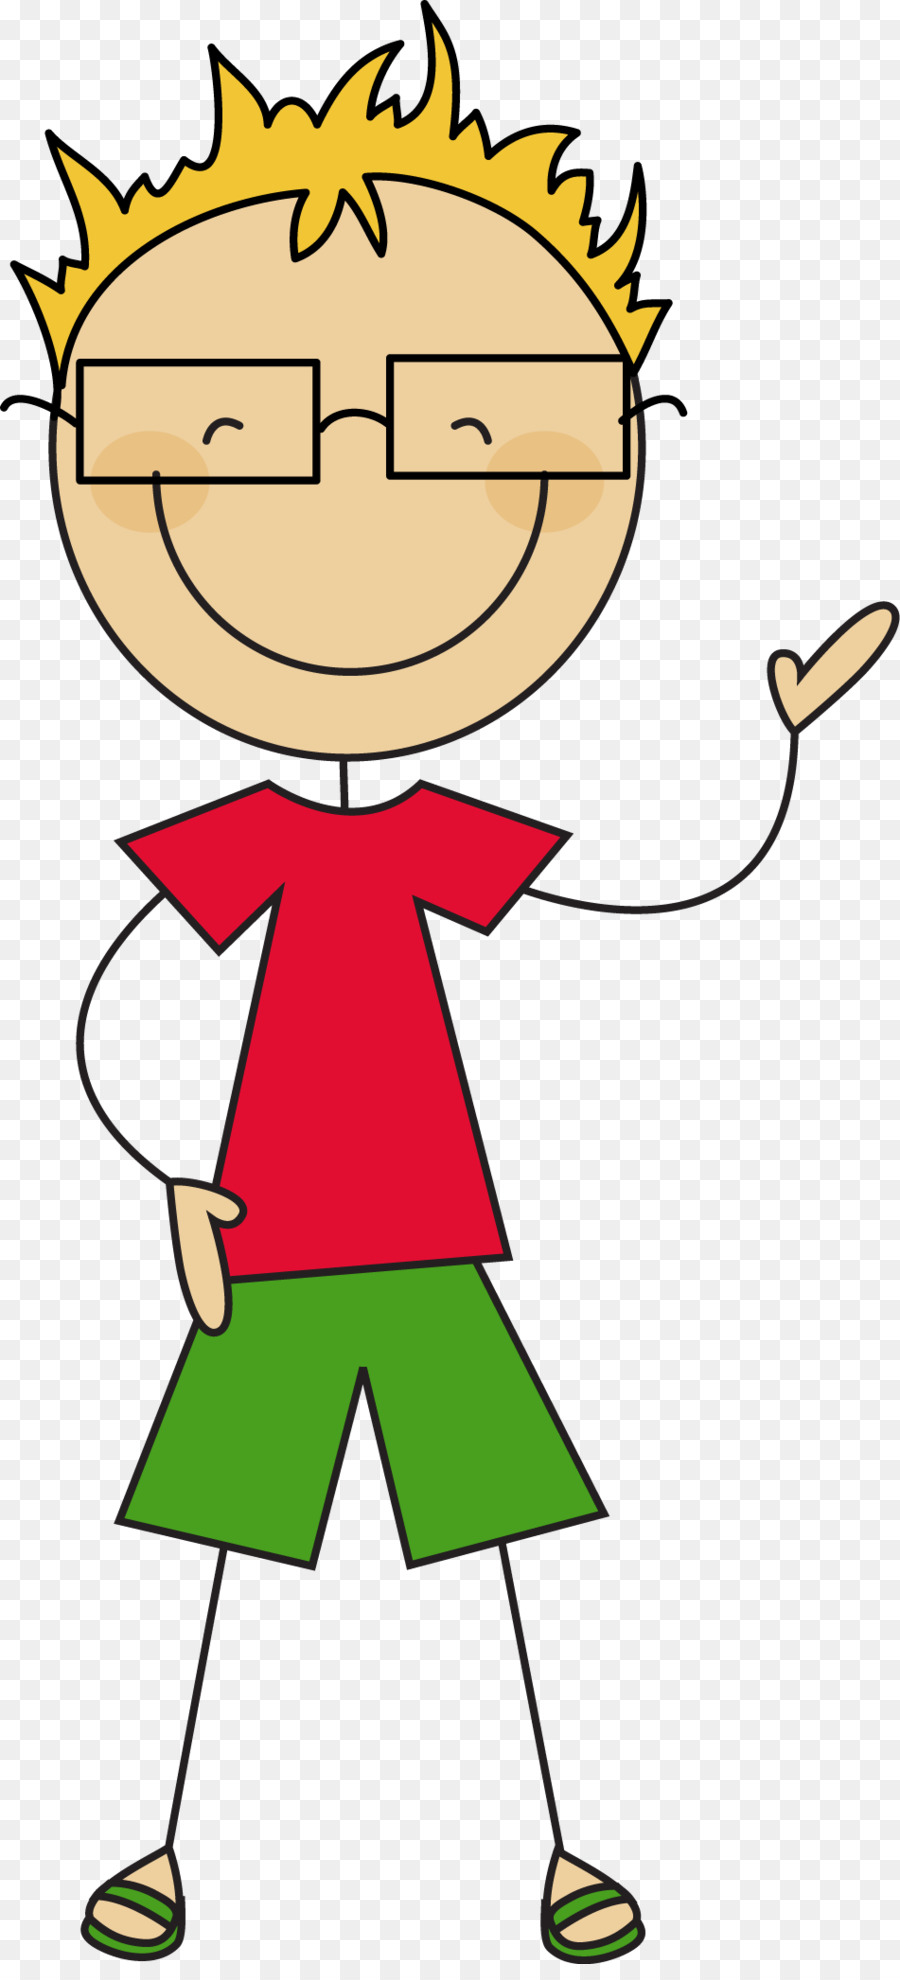 Boy clipart stick figure. Clip art child png